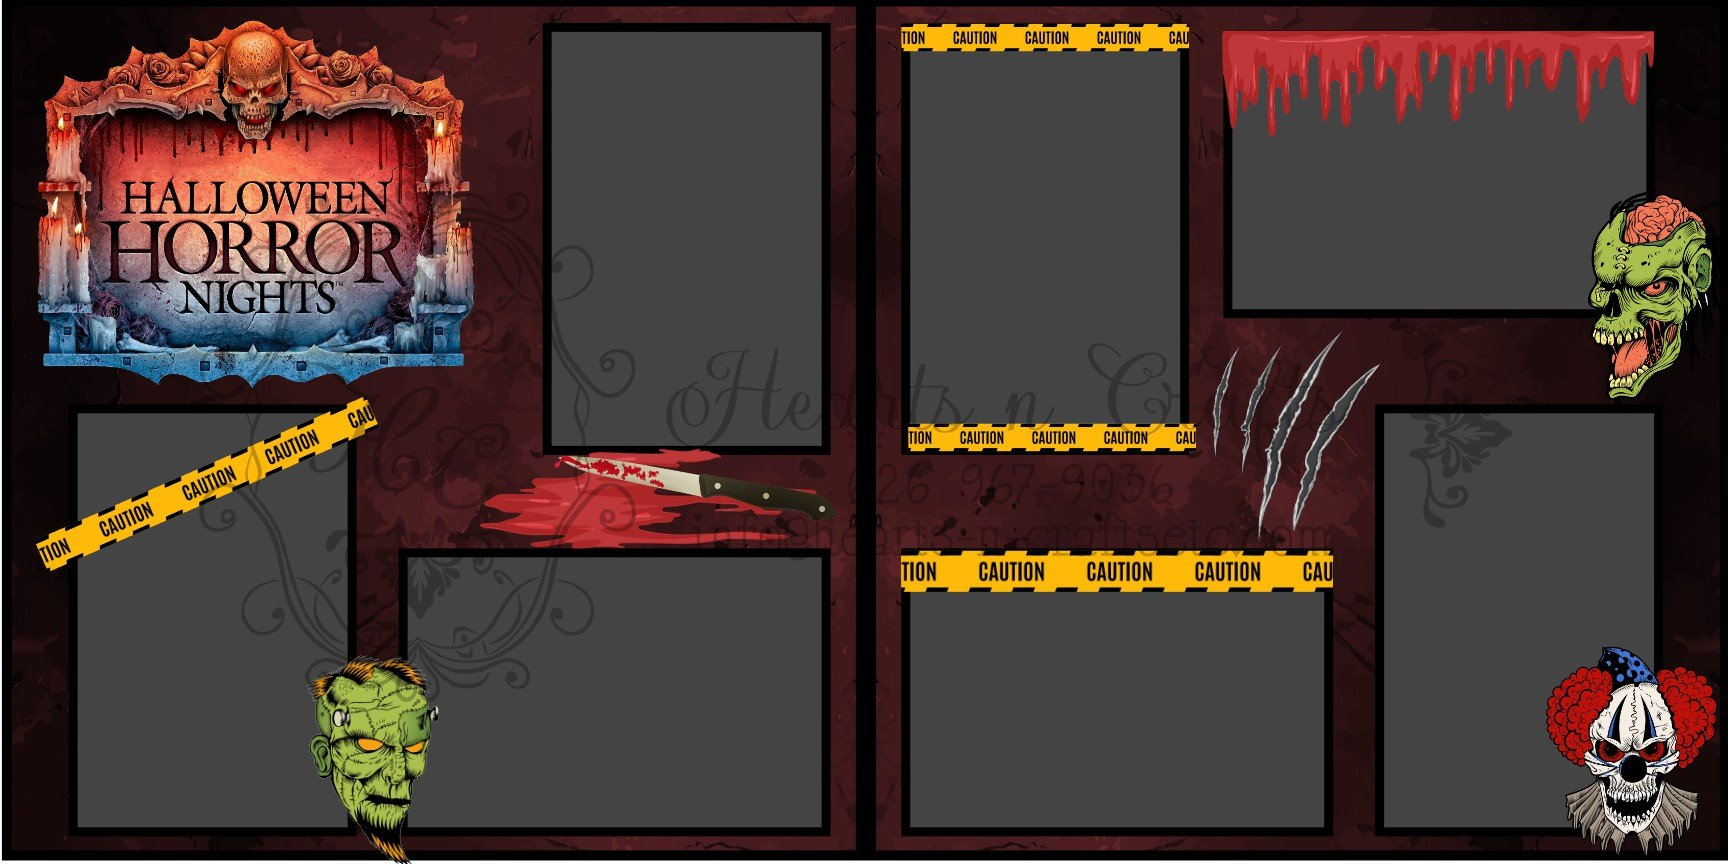 Halloween Horror Night 2 page layout